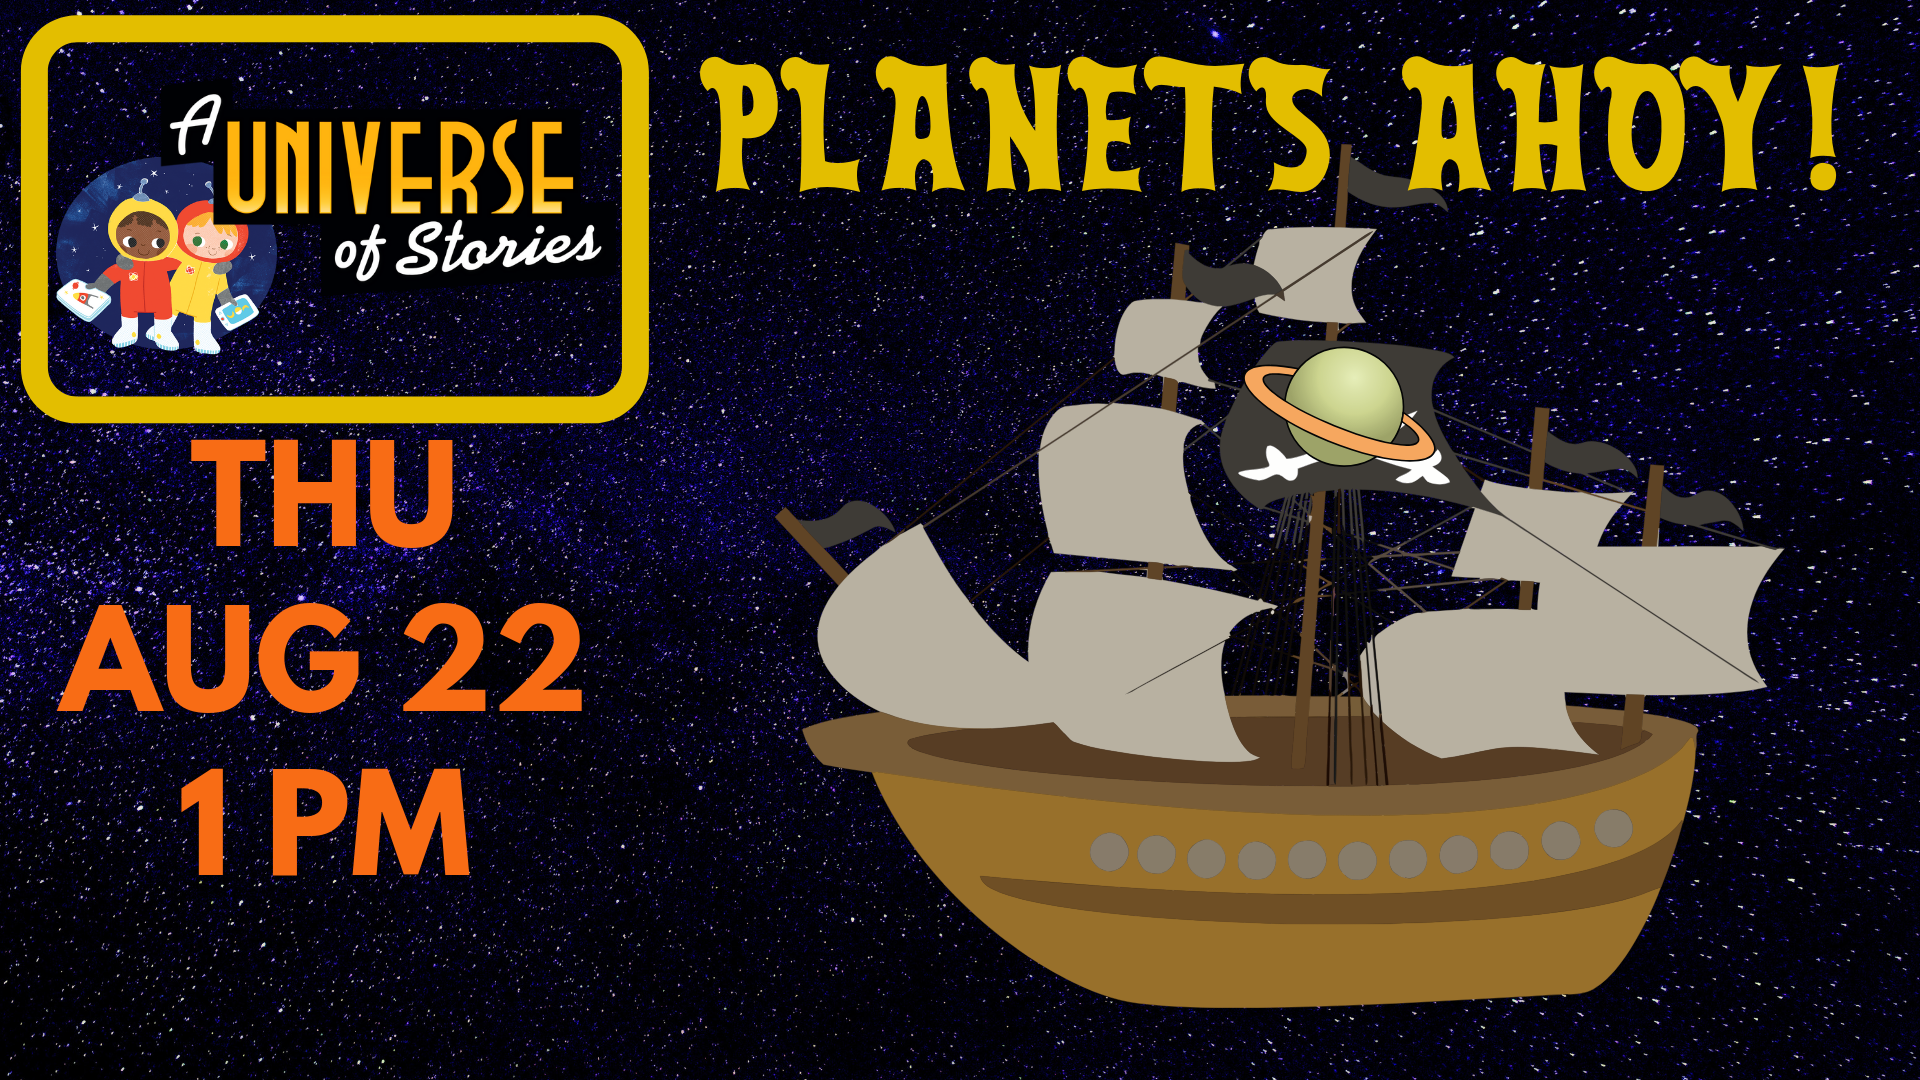 Pete the Pirate's Planets Ahoy!